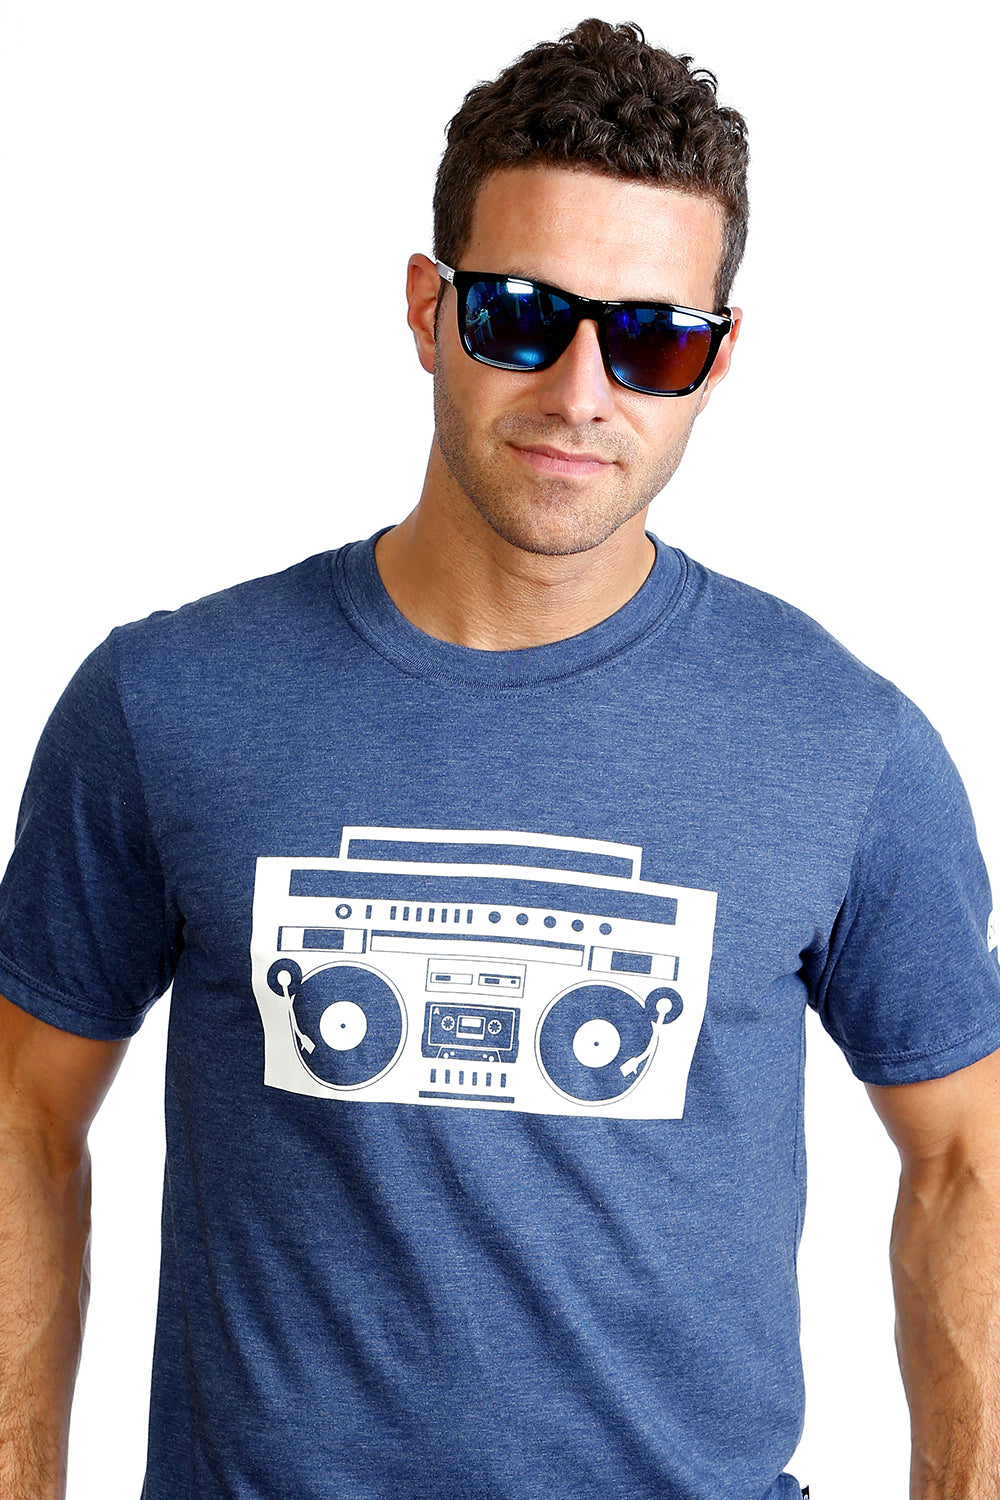 Men's Radio Boombox T-shirt - Organic cotton